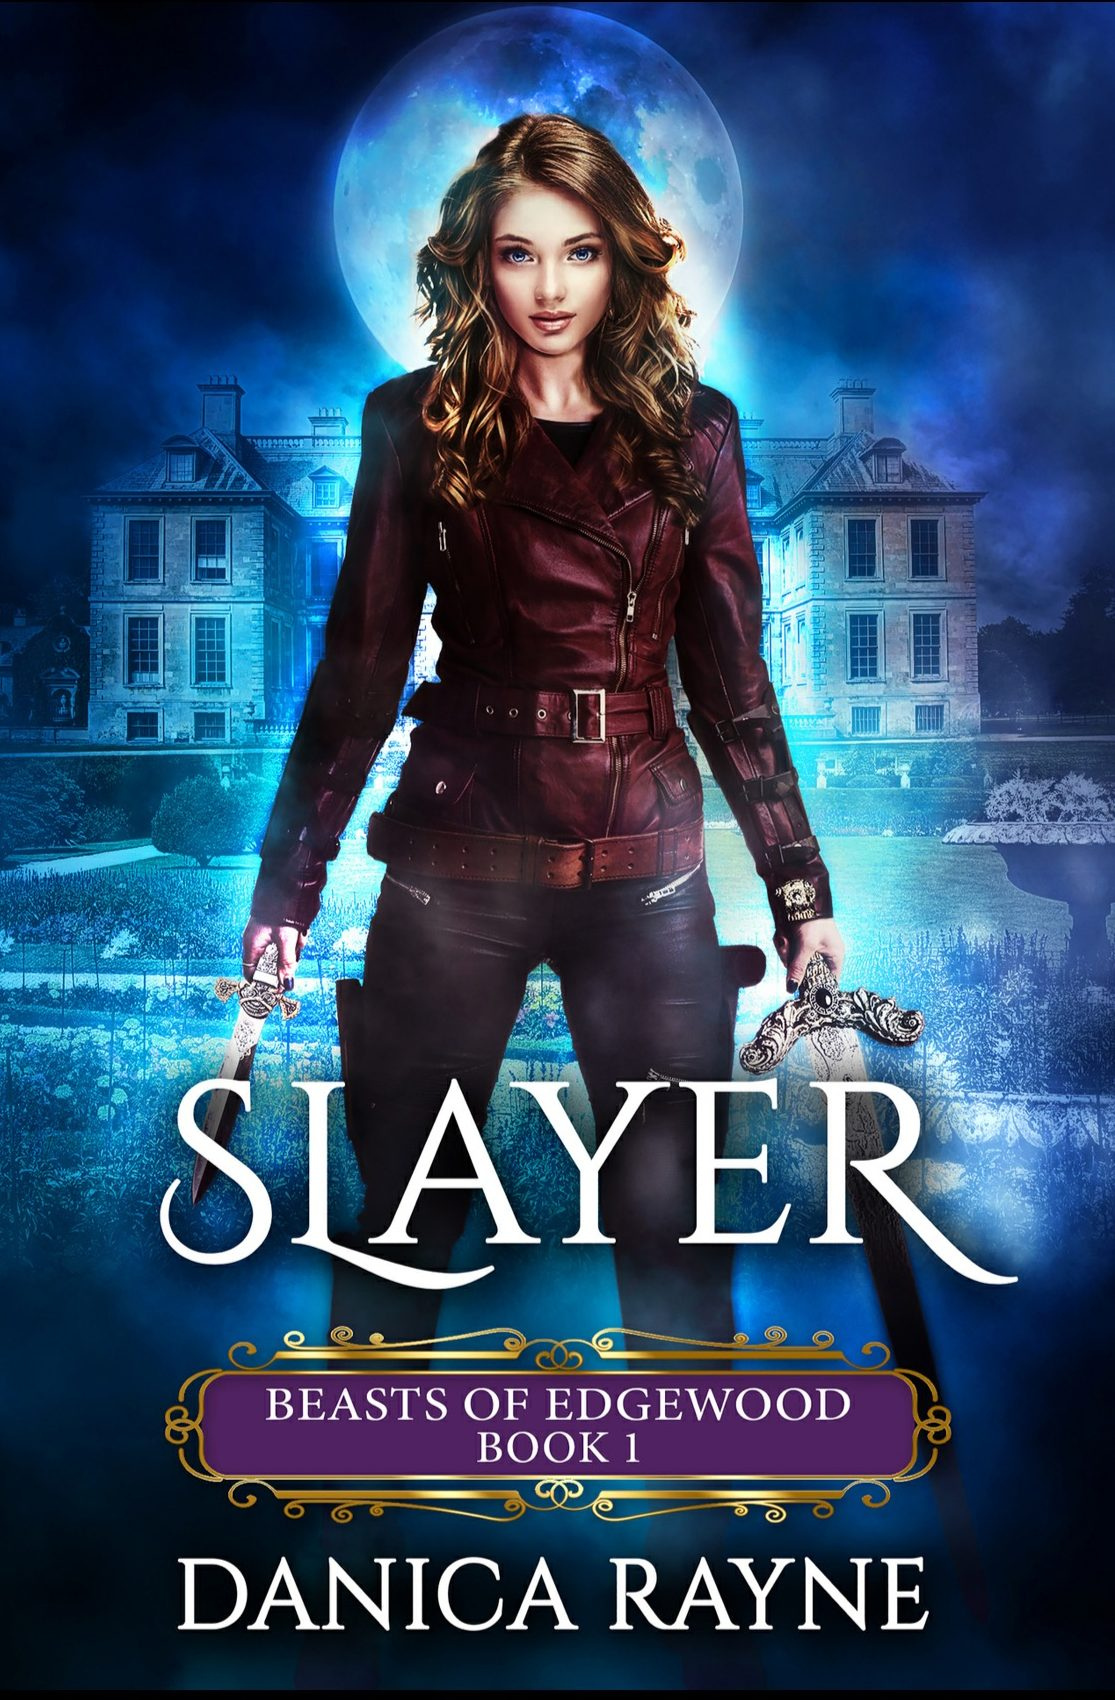 Slayer by Danica Rayne – A Book Review